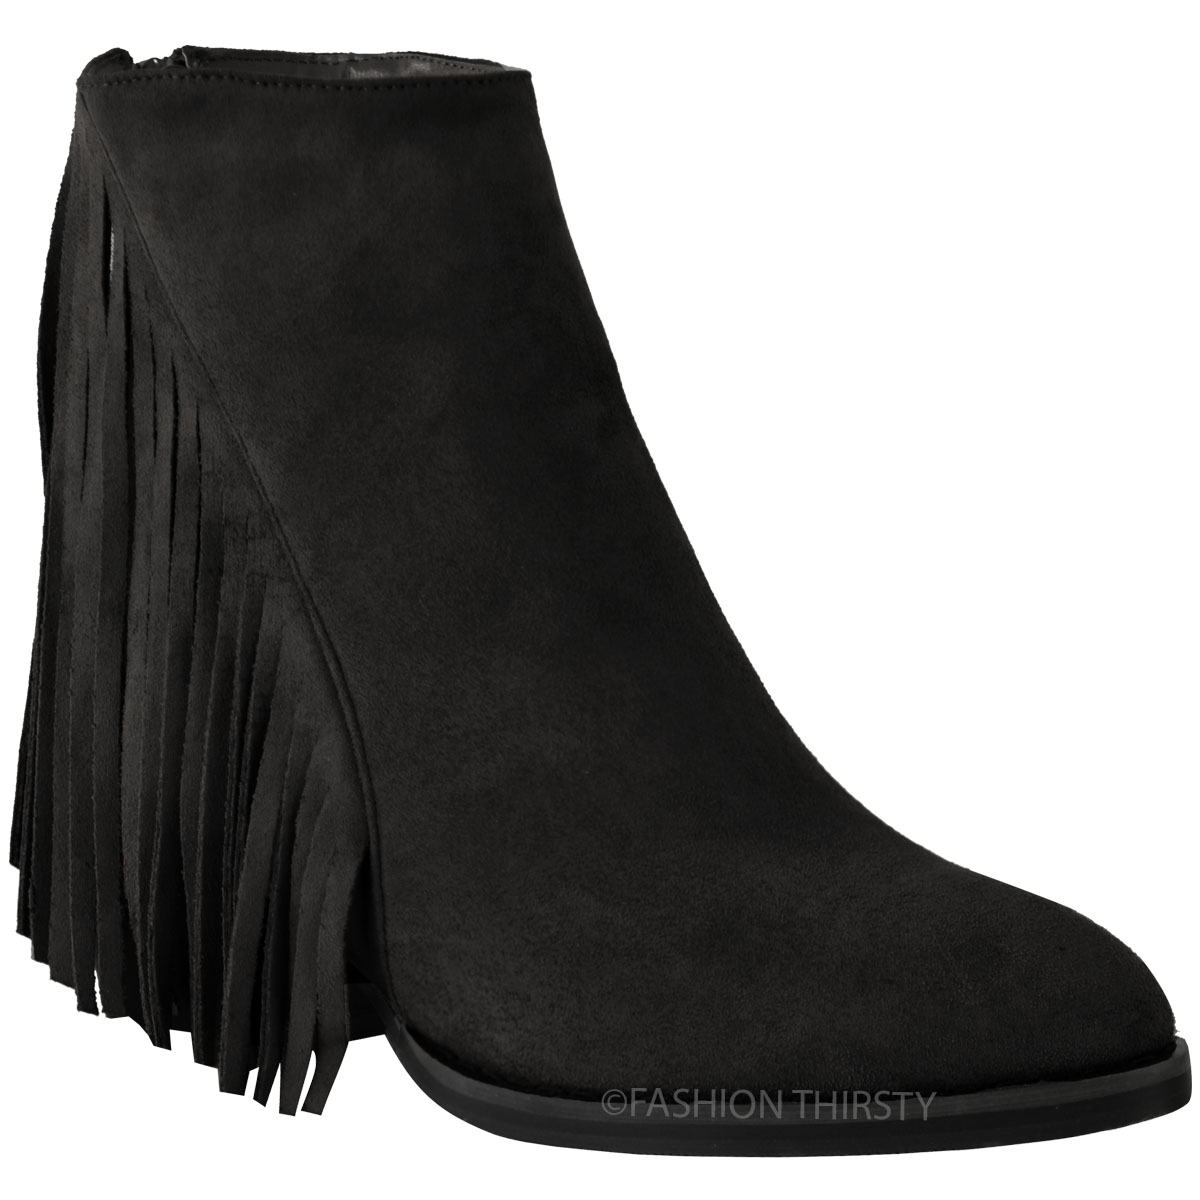 NEW WOMENS TASSEL FRINGE ANKLE BOOTS LOW BLOCK HEEL BIKER CASUAL ...